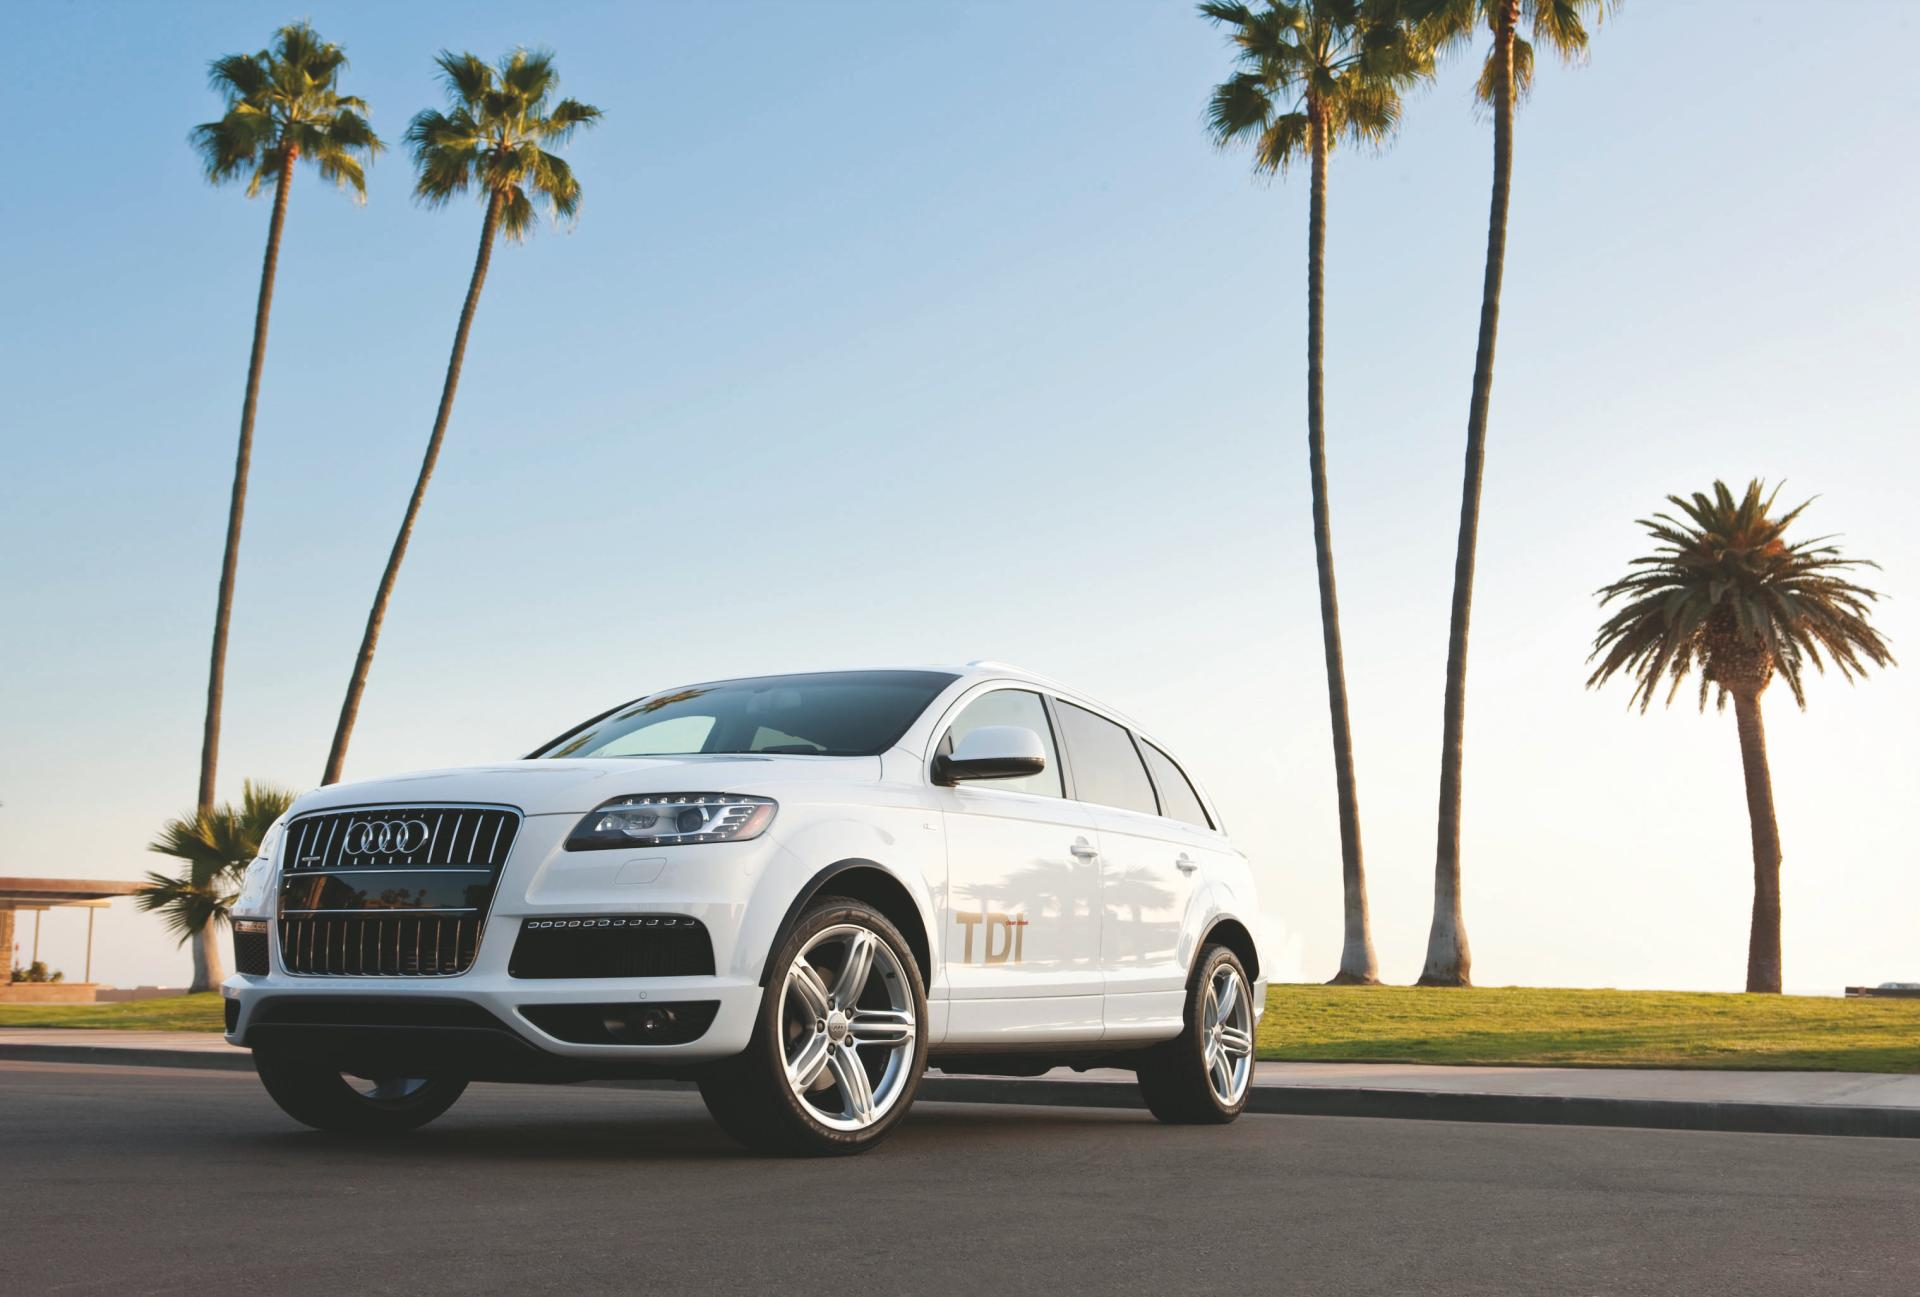 2012 Audi Q7 News And Information Conceptcarz Com